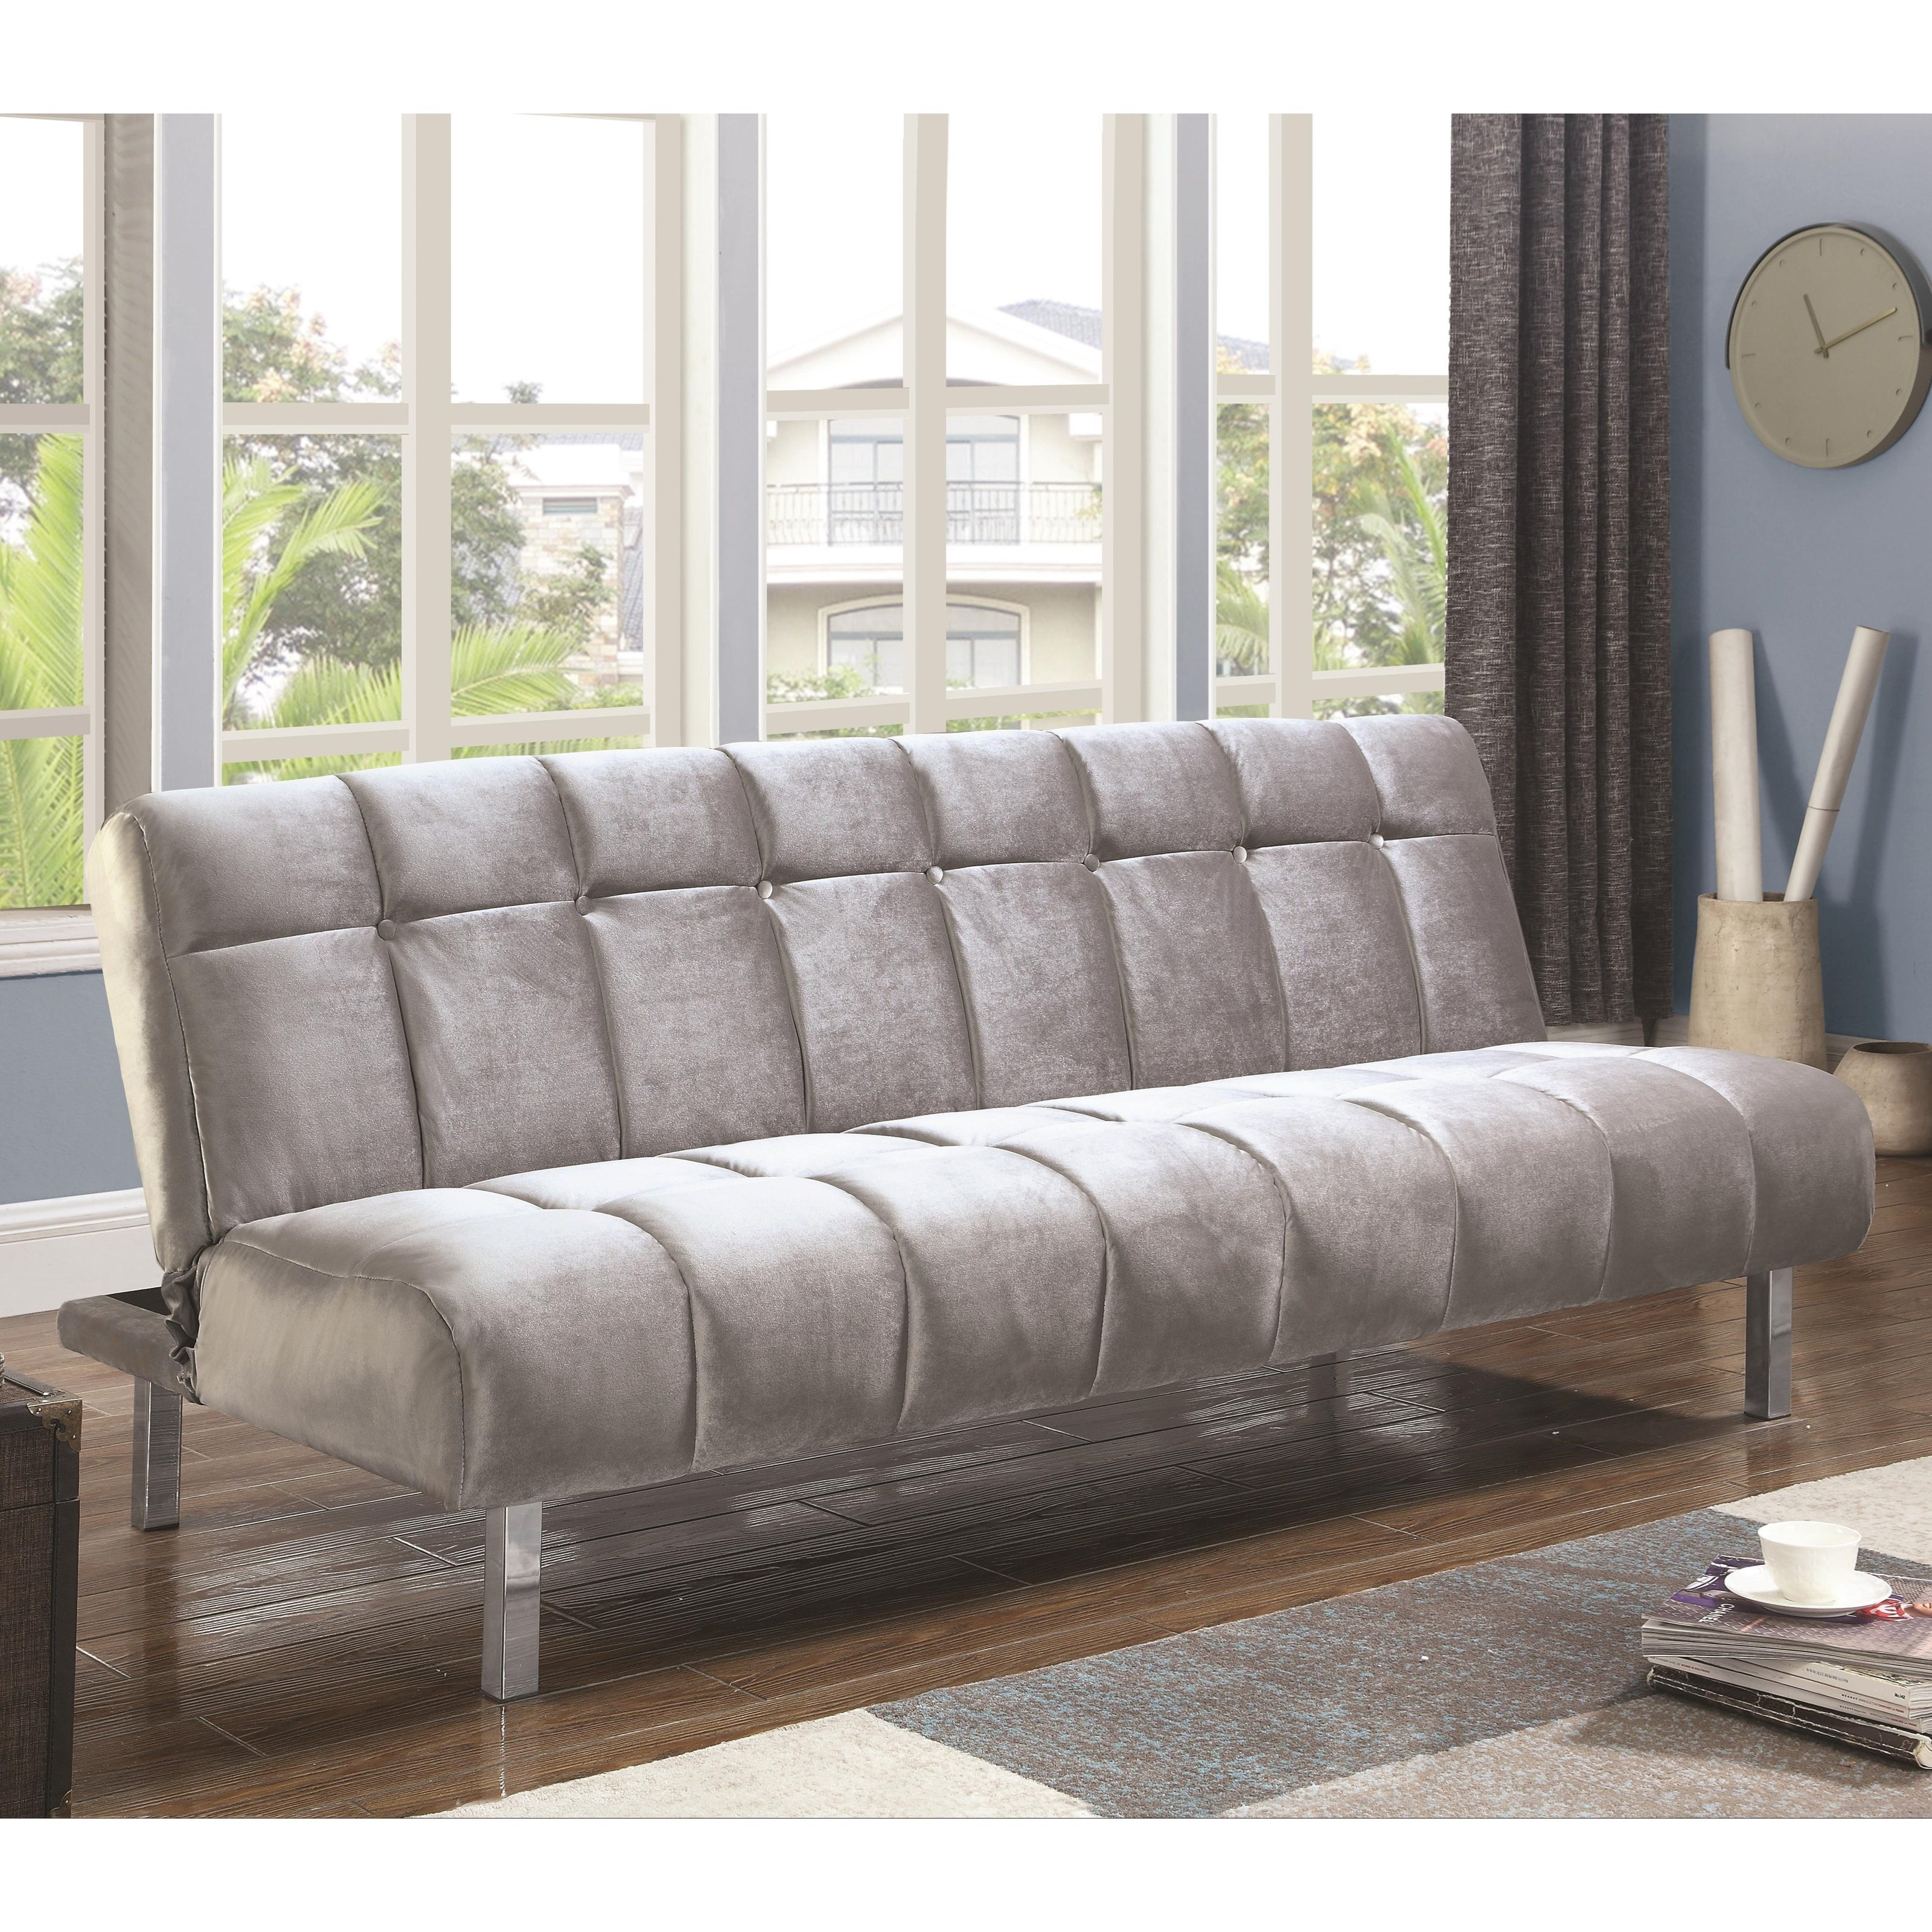 Sofa Beds and Futons Contemporary Sofa Bed with Channeled Design by Coaster  at Rooms for Less